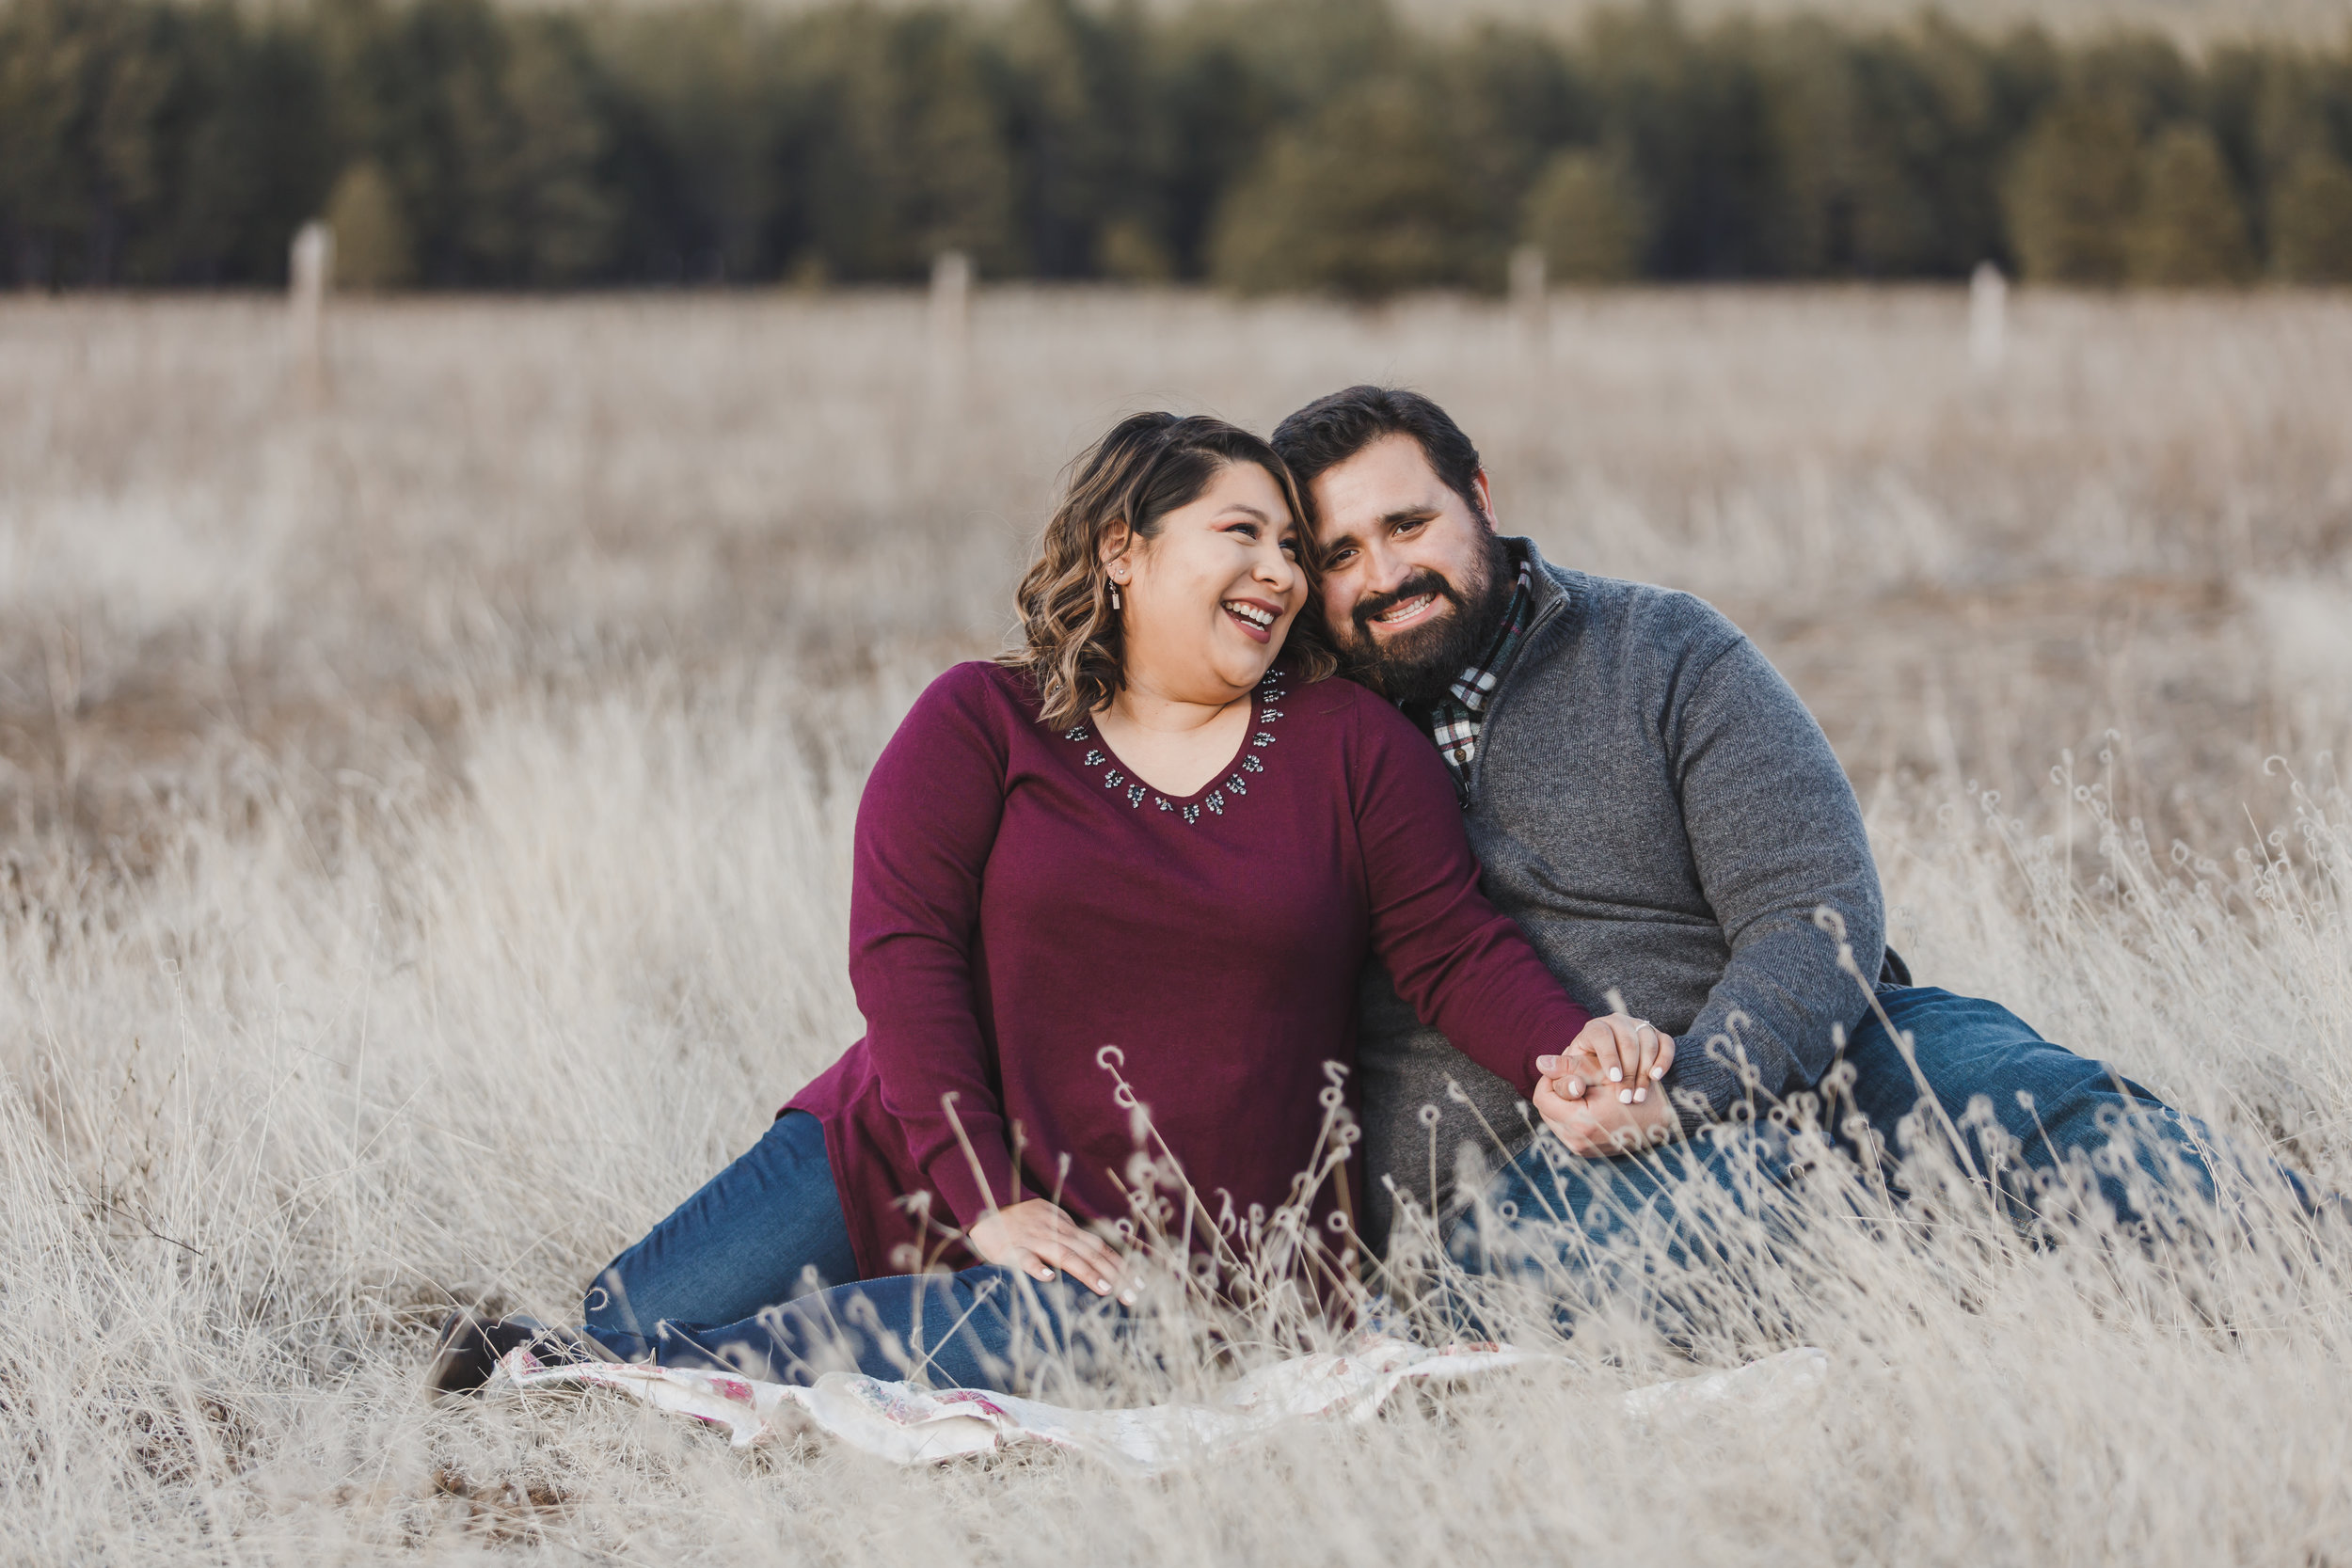 engaged-laughter-couple-photographer